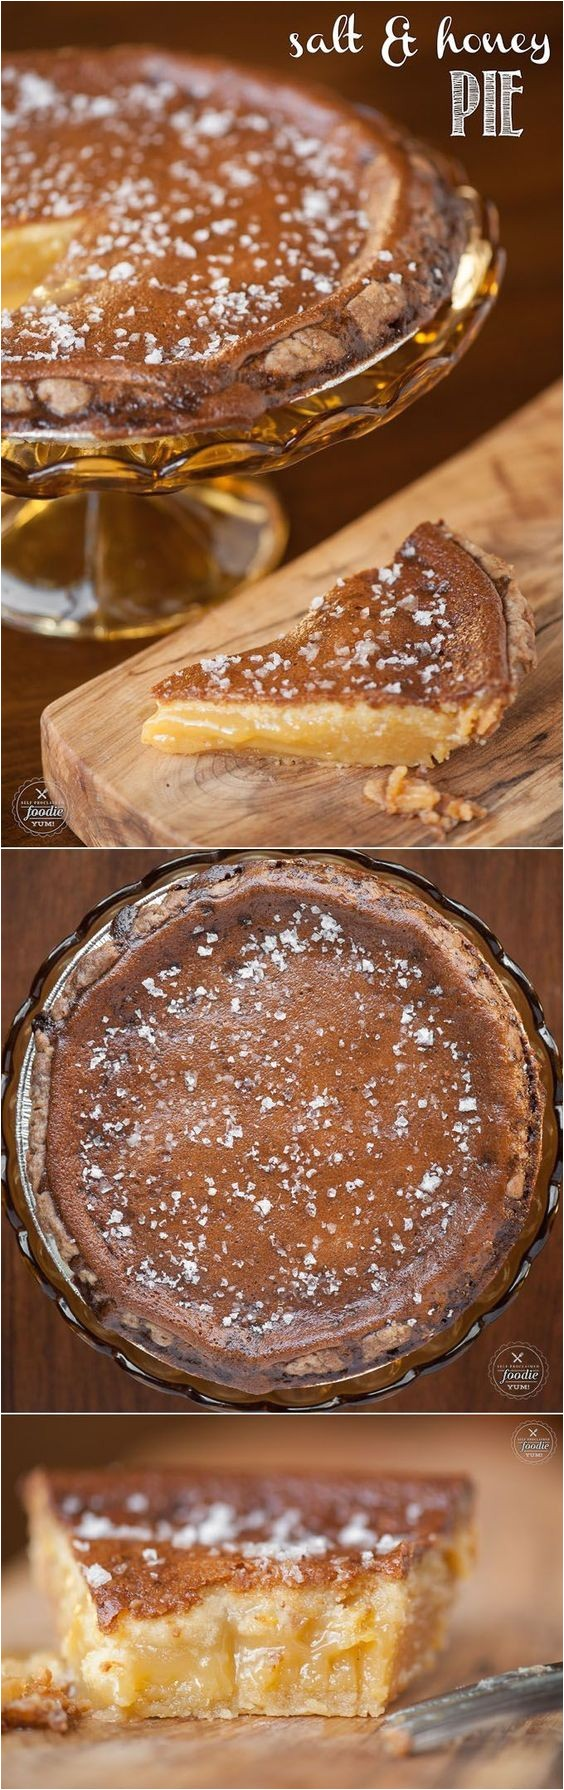 oatmeal pie my grandmother has been making this sweet chewy delicious pie for years and